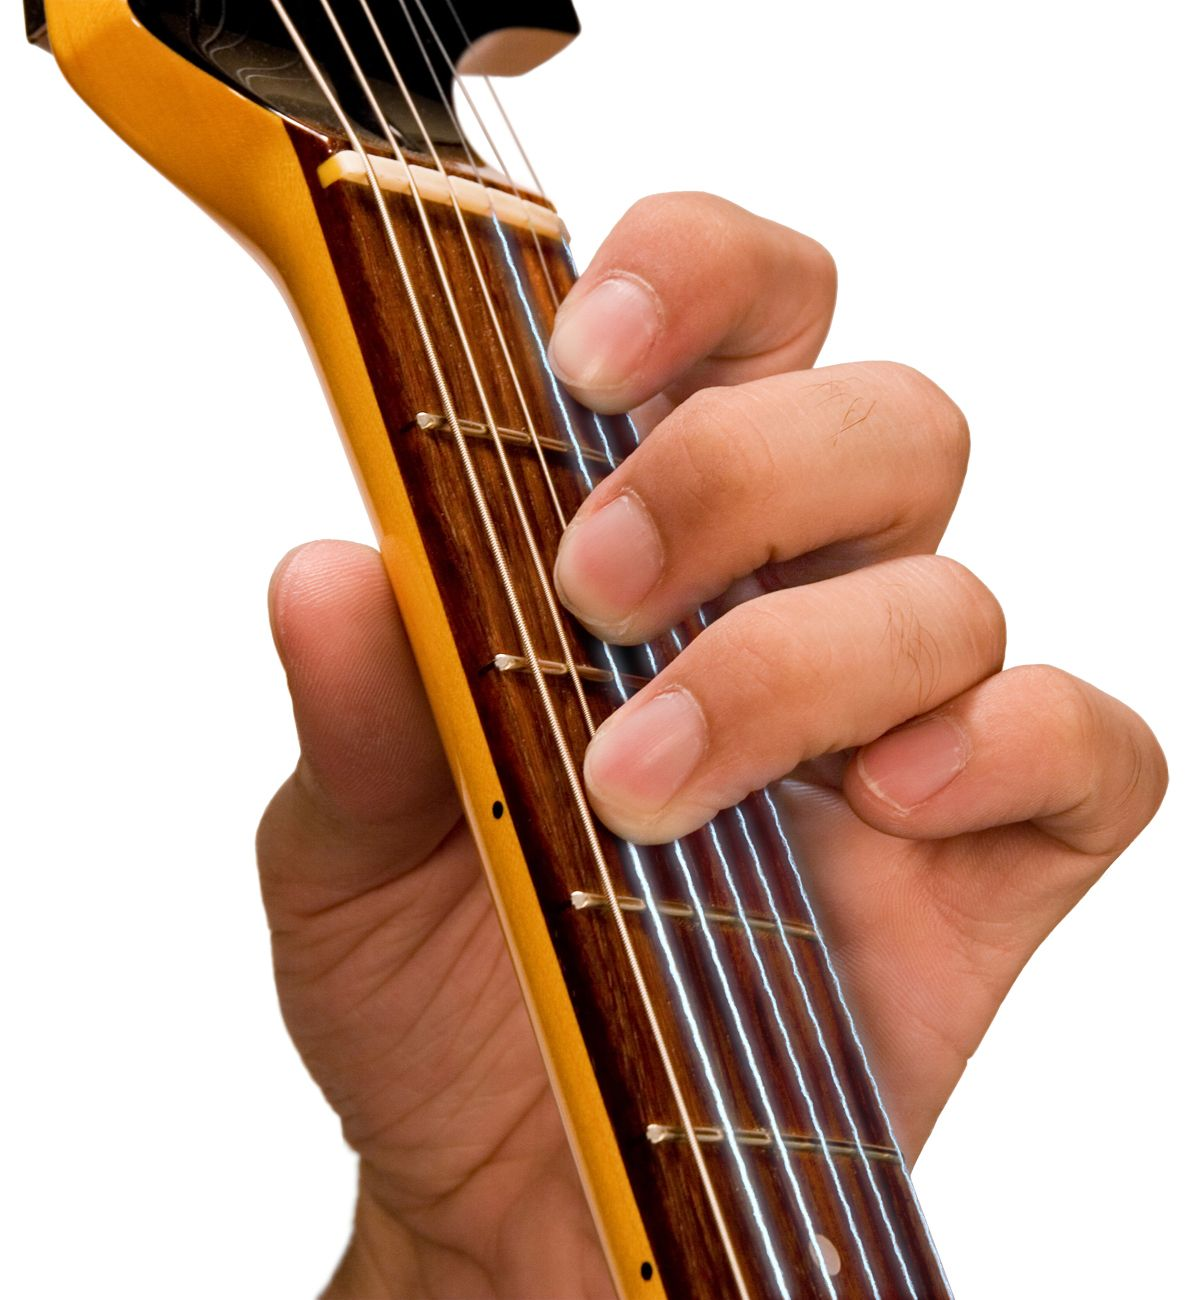 How to learn playing electric guitar fast - Quora